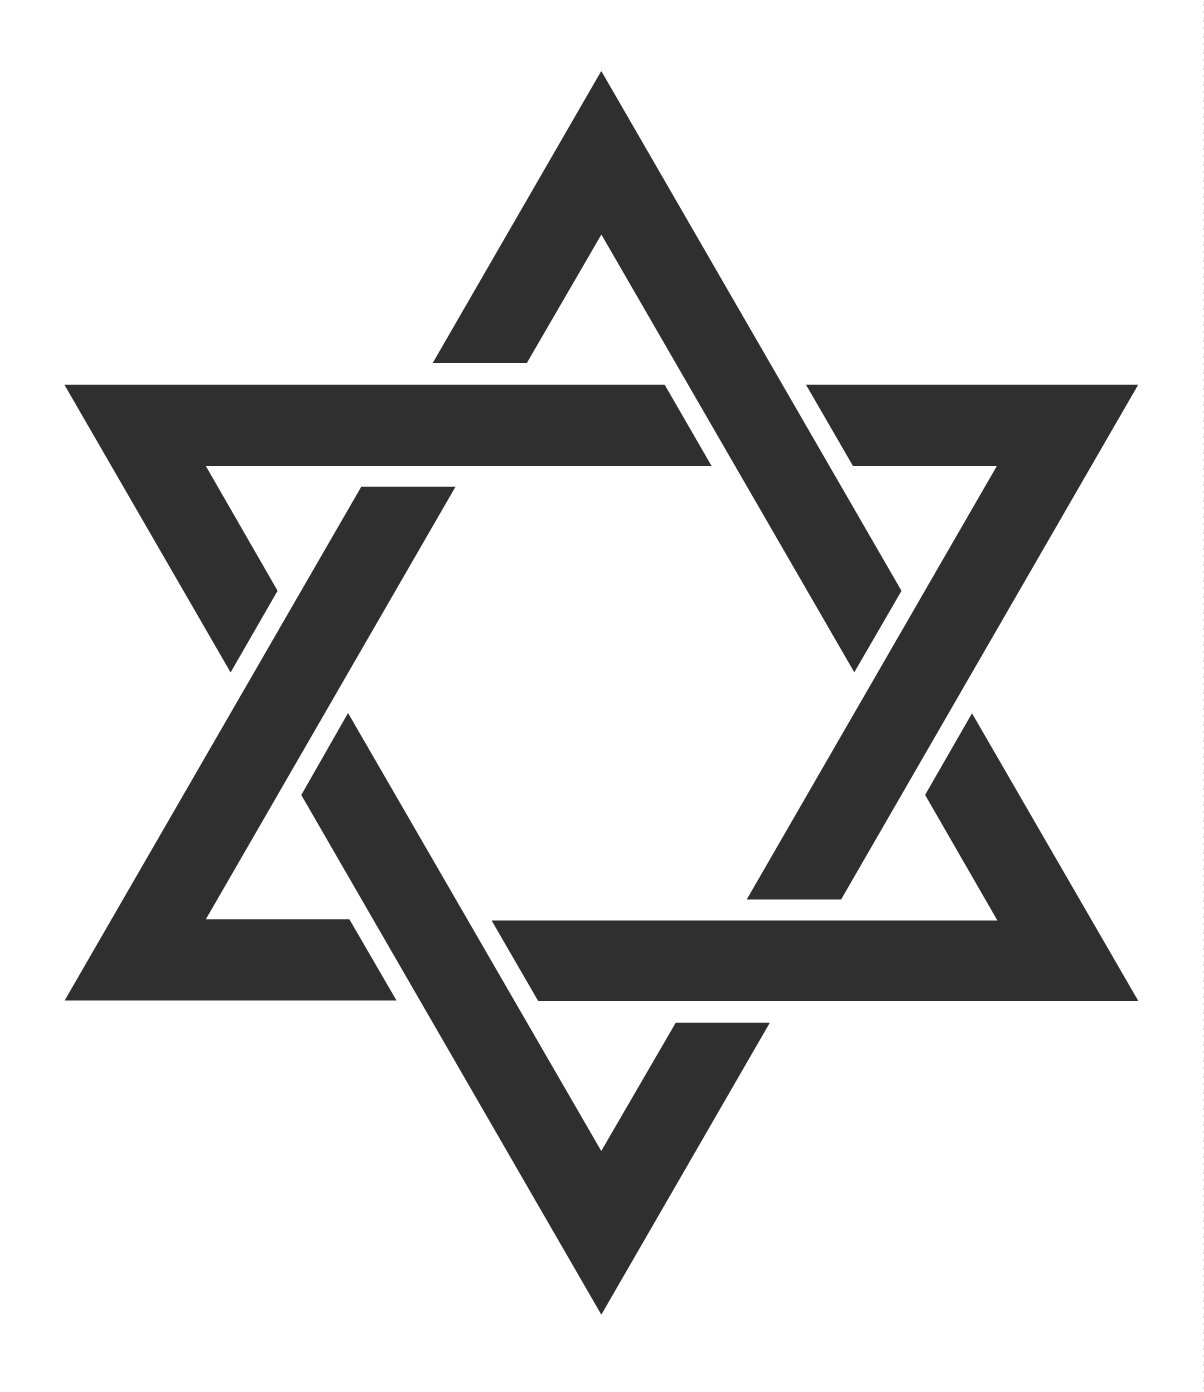 Star Of David Symbol, Judaism Religious Symbols And Their Meanings By Mythologian